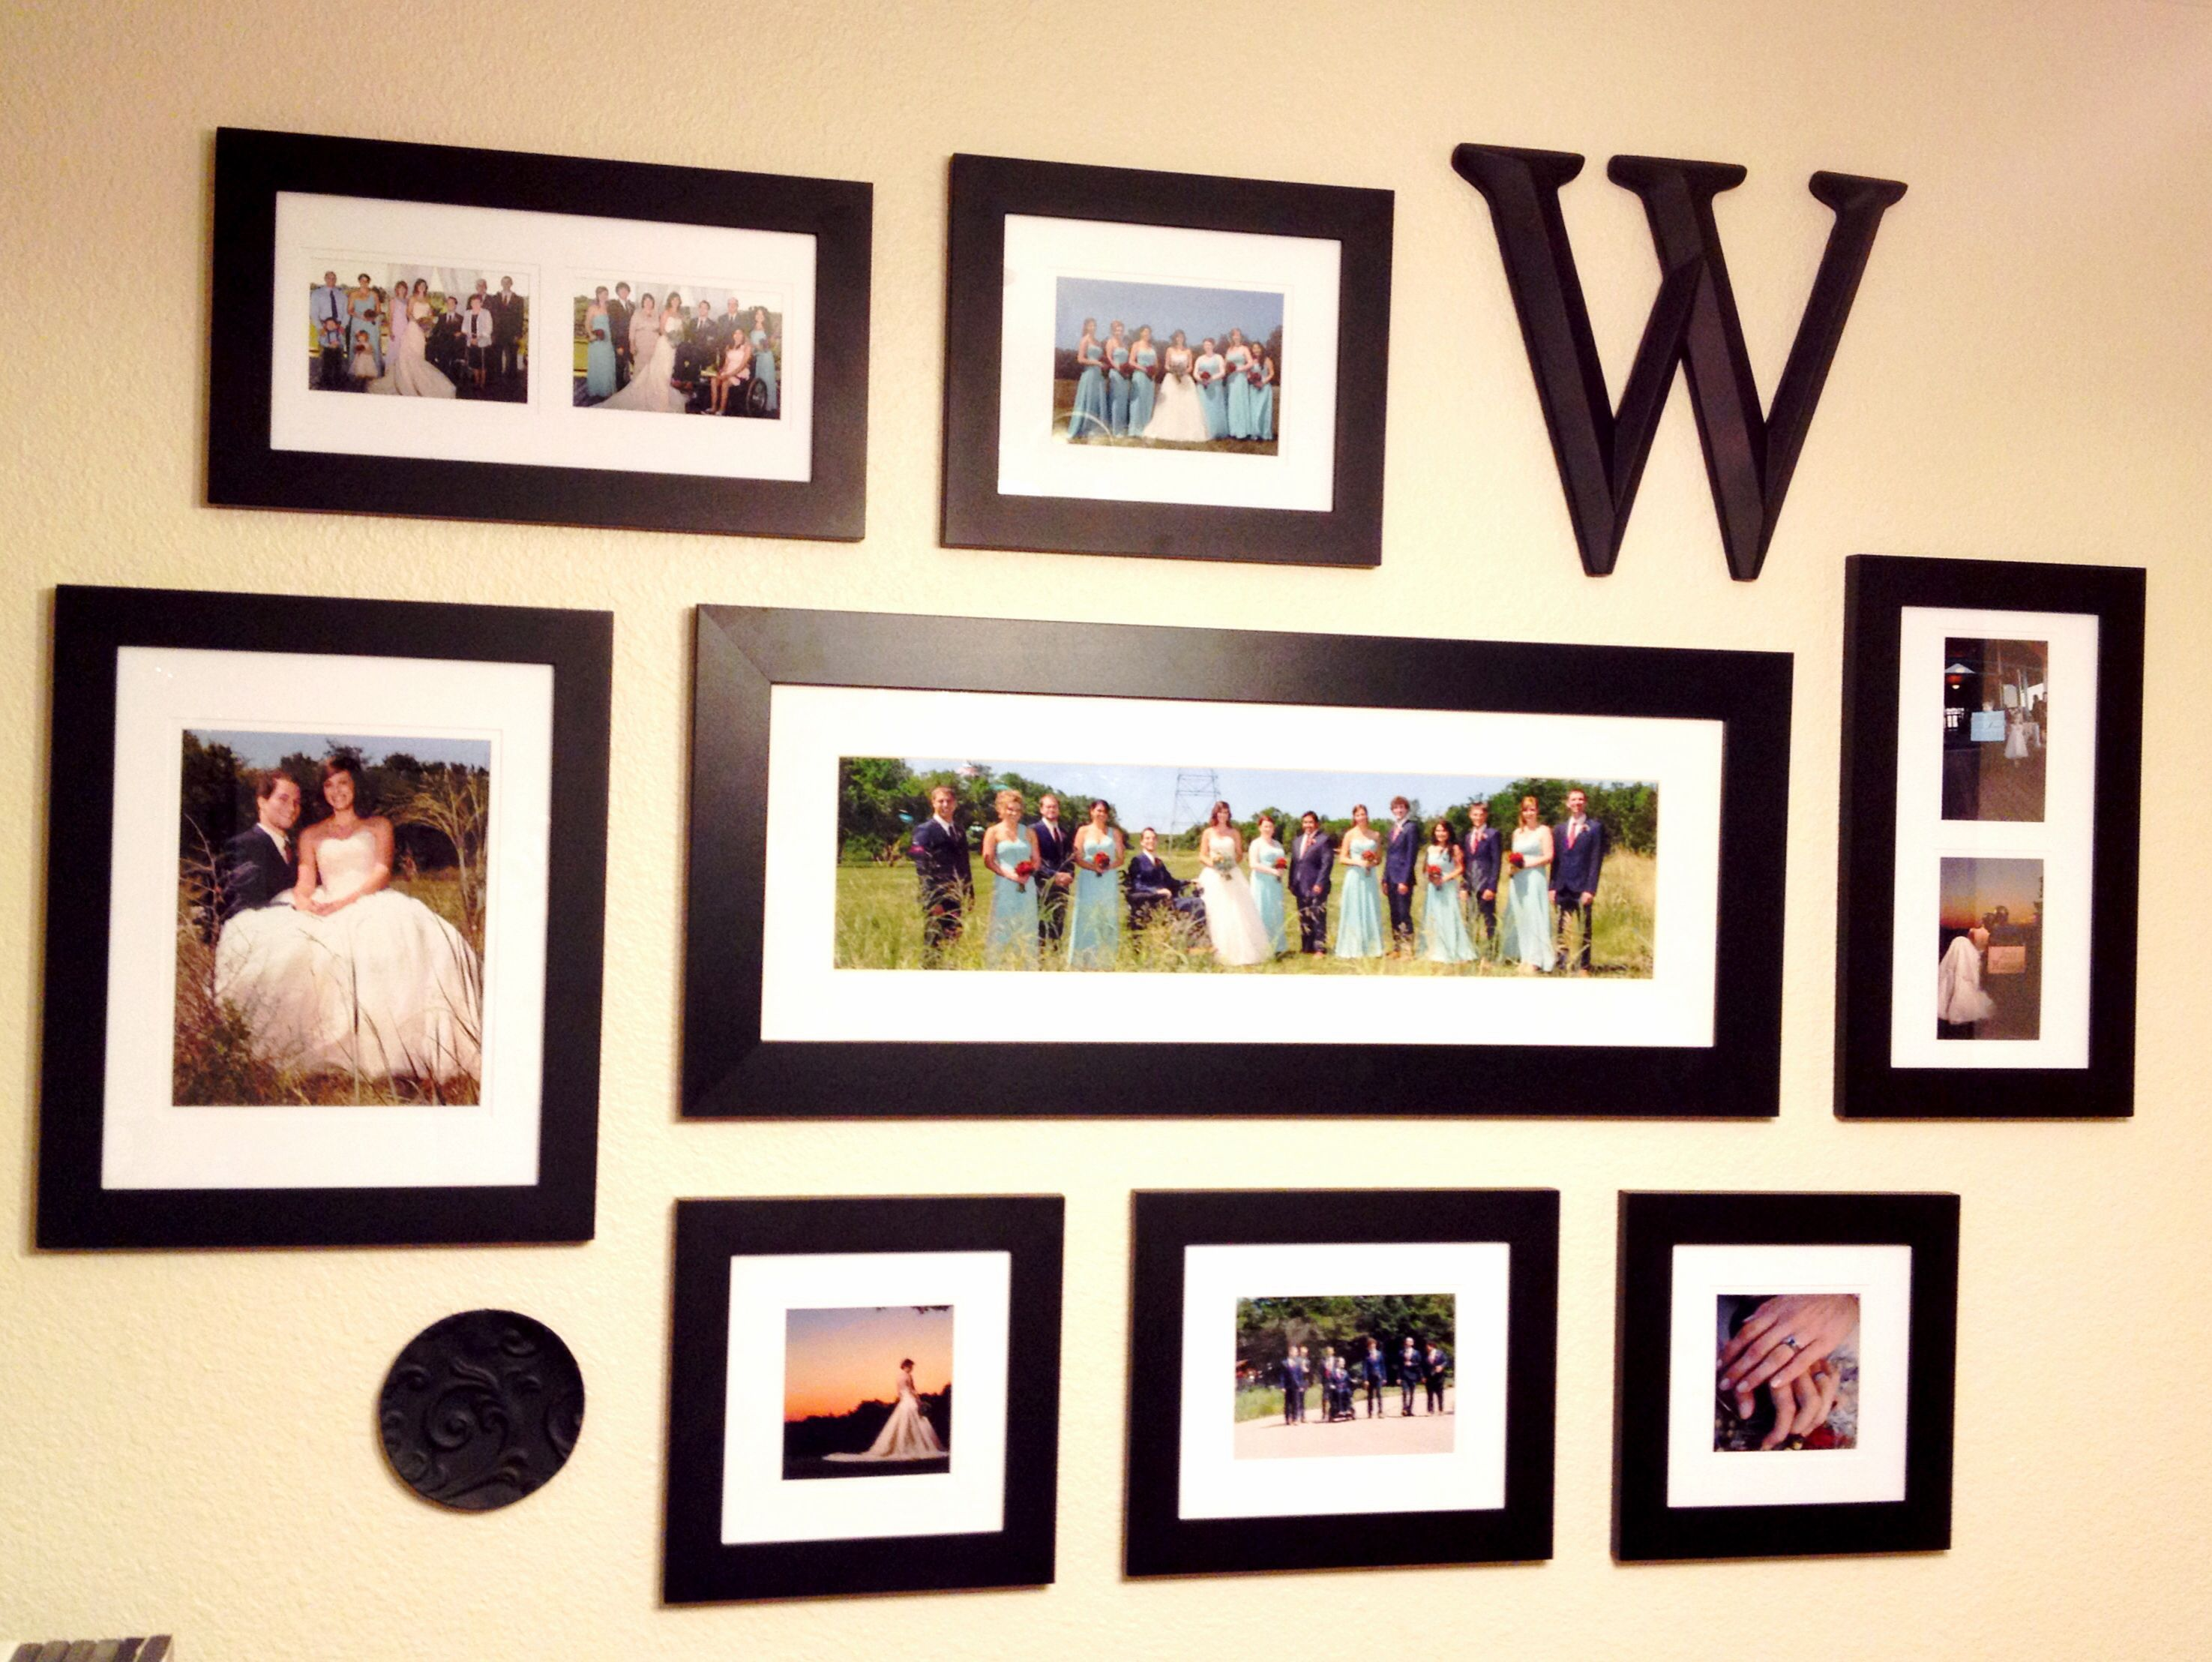 Our Photo Collage Wall Of Wedding Photos